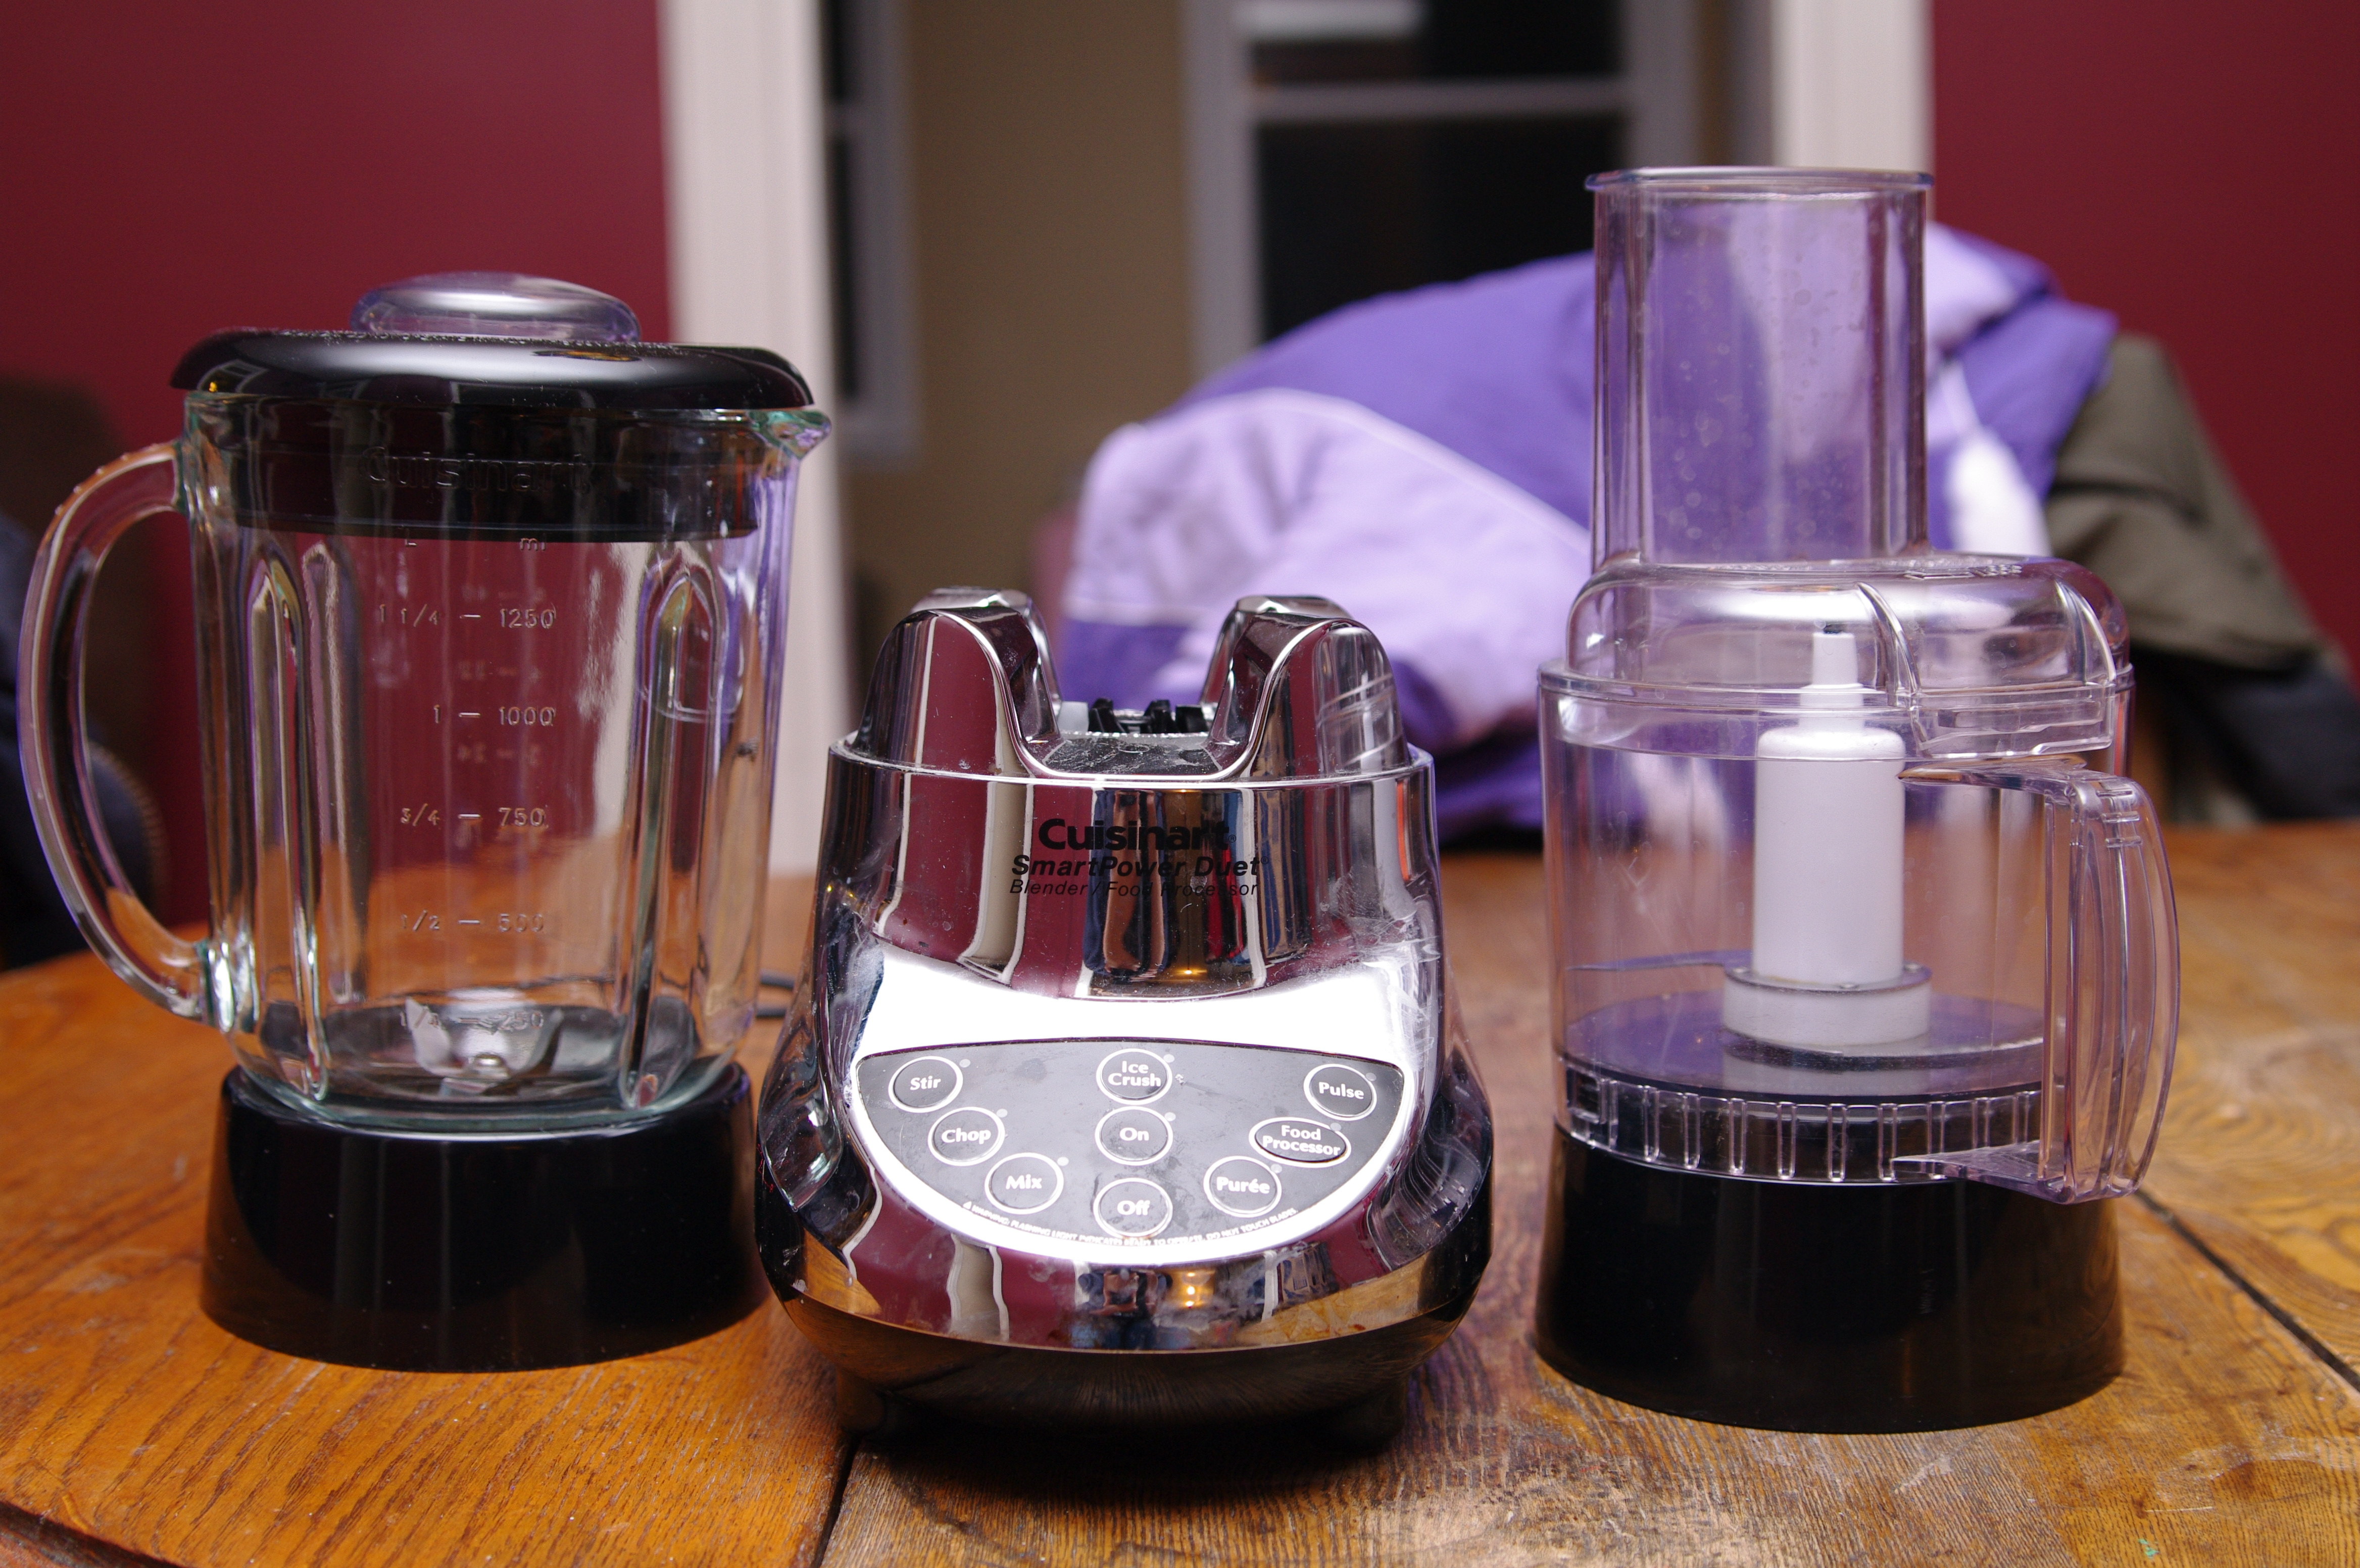 Cuisinart smartpower duet blender and food processor - Steven And I Got This Cuisinart Smartpower Duet Blender Food Processor As A Wedding Gift Back In 2007 We Got Some Good Use Out Of It Making Smoothies And